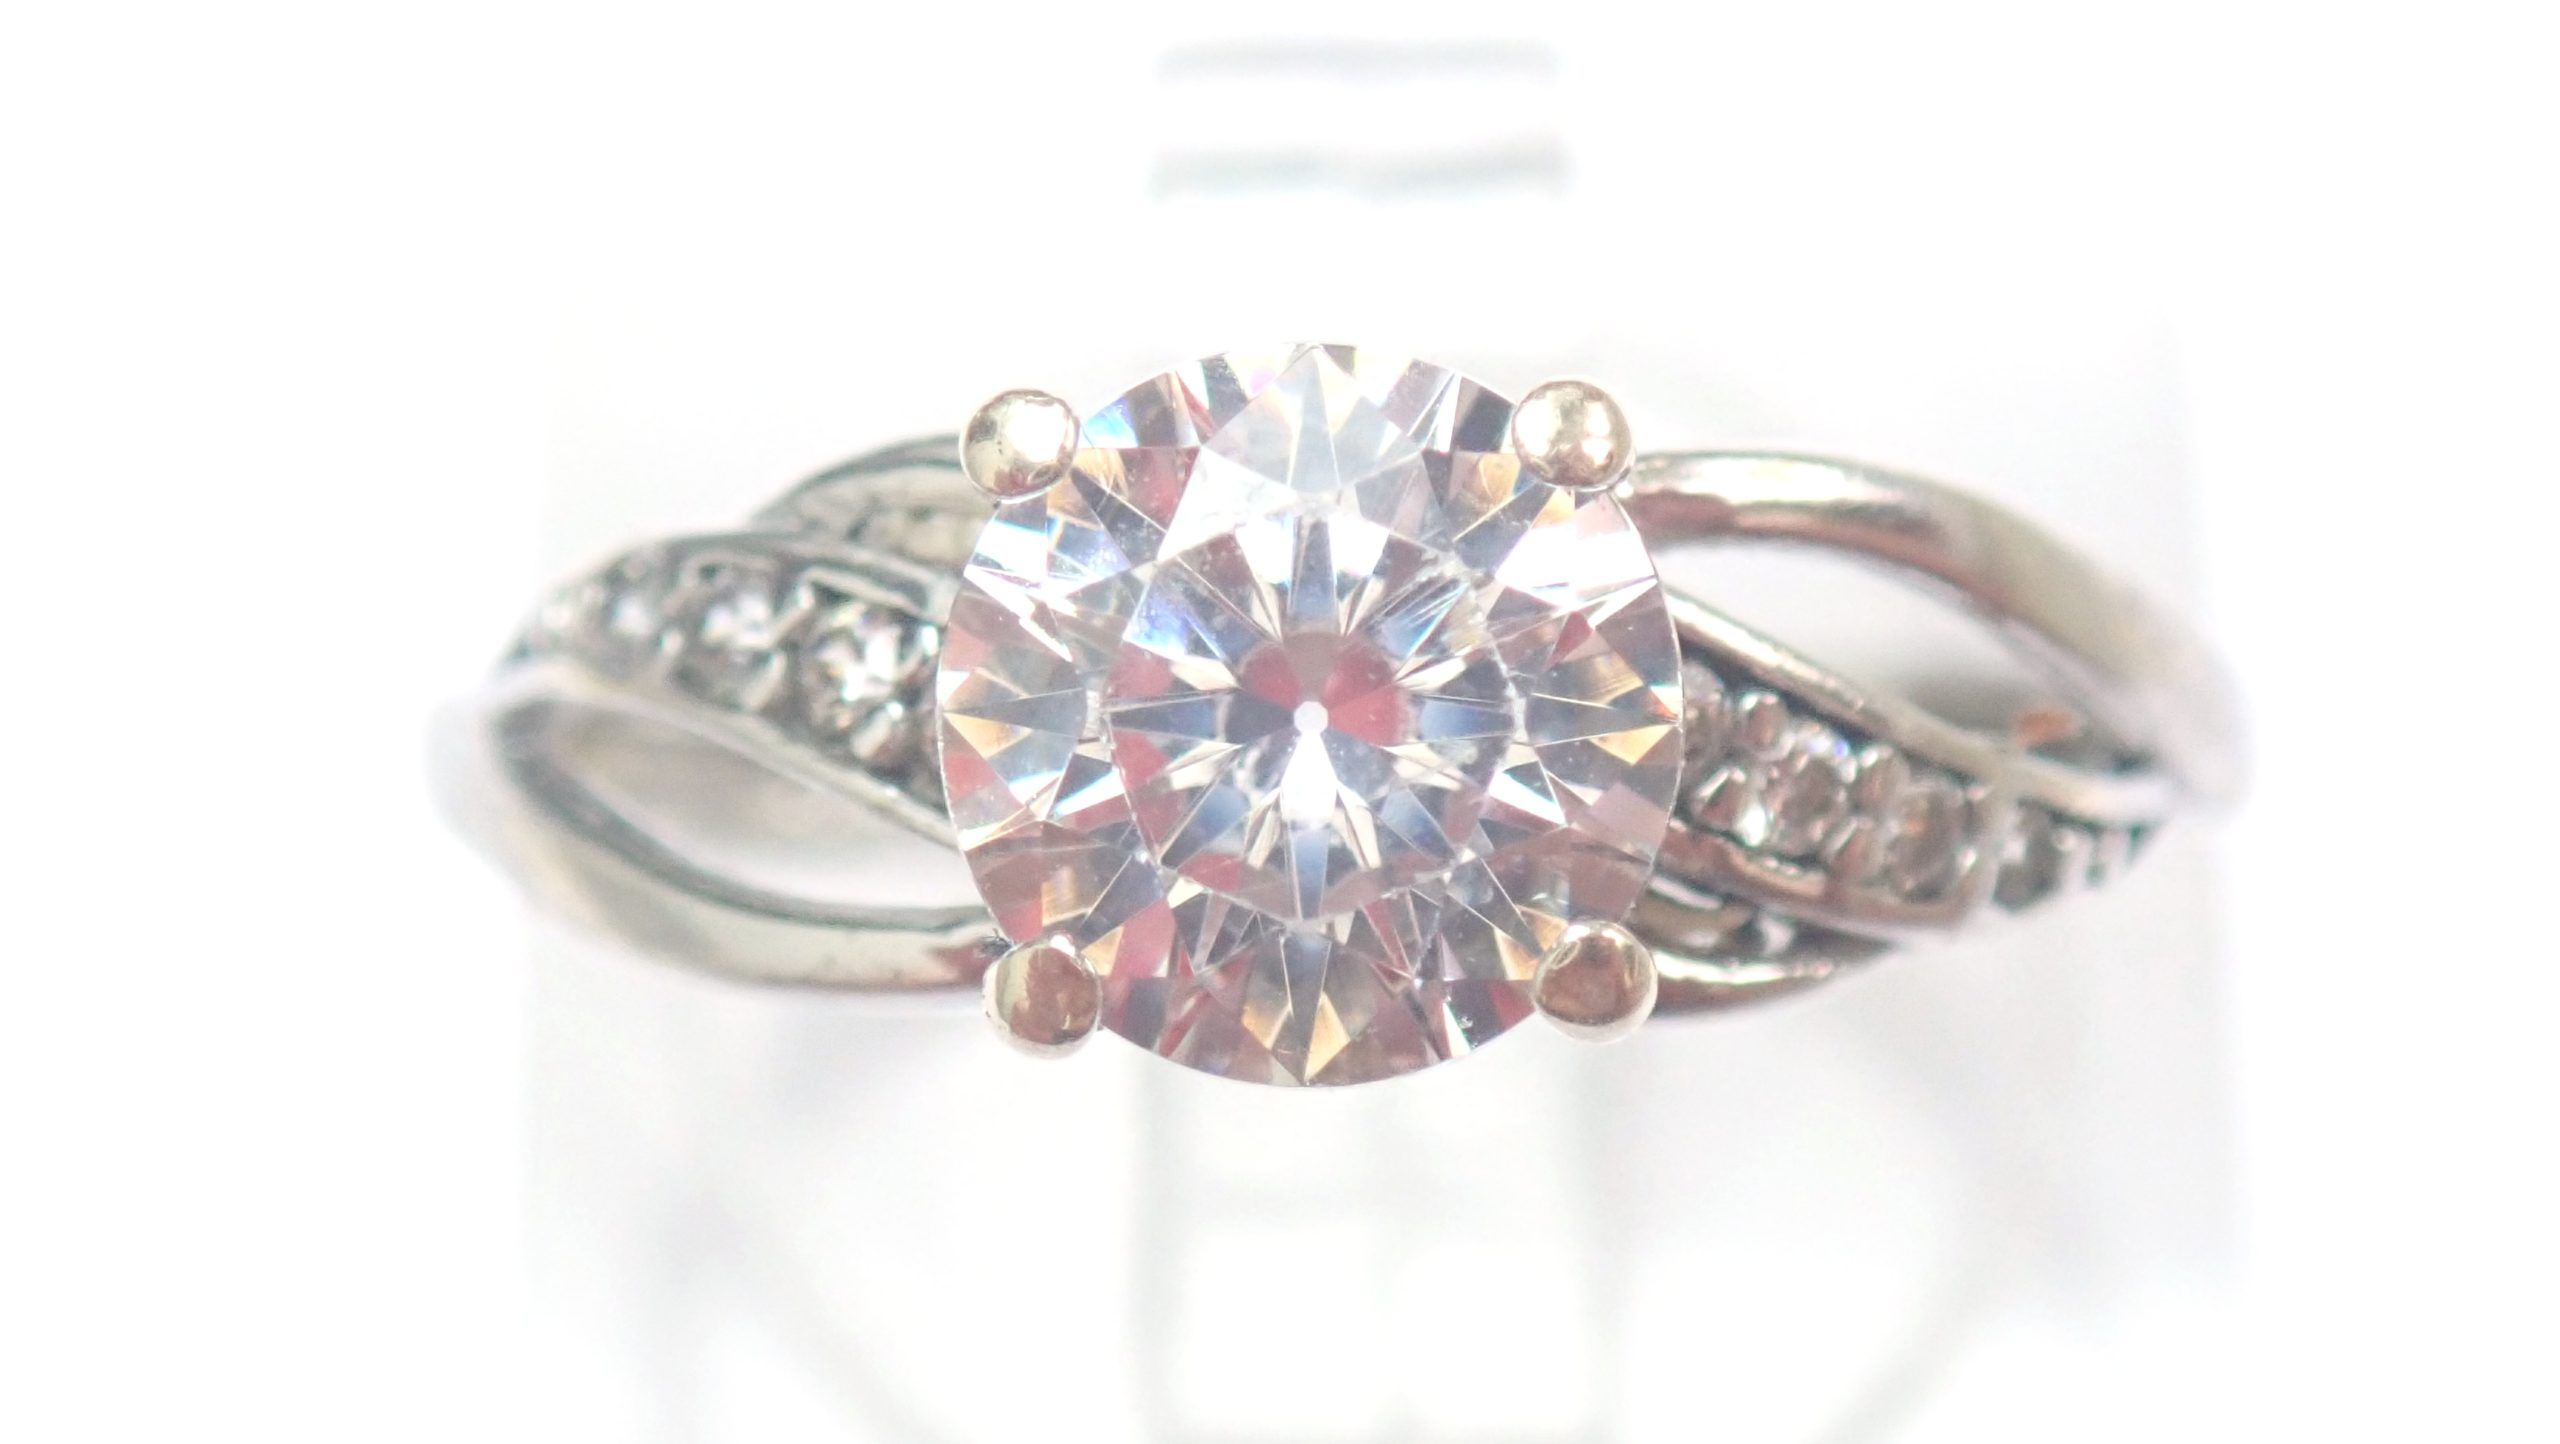 375 Carat Gold 1.0 Carat Cubic Zirconia Solitaire with Accents Size L #25